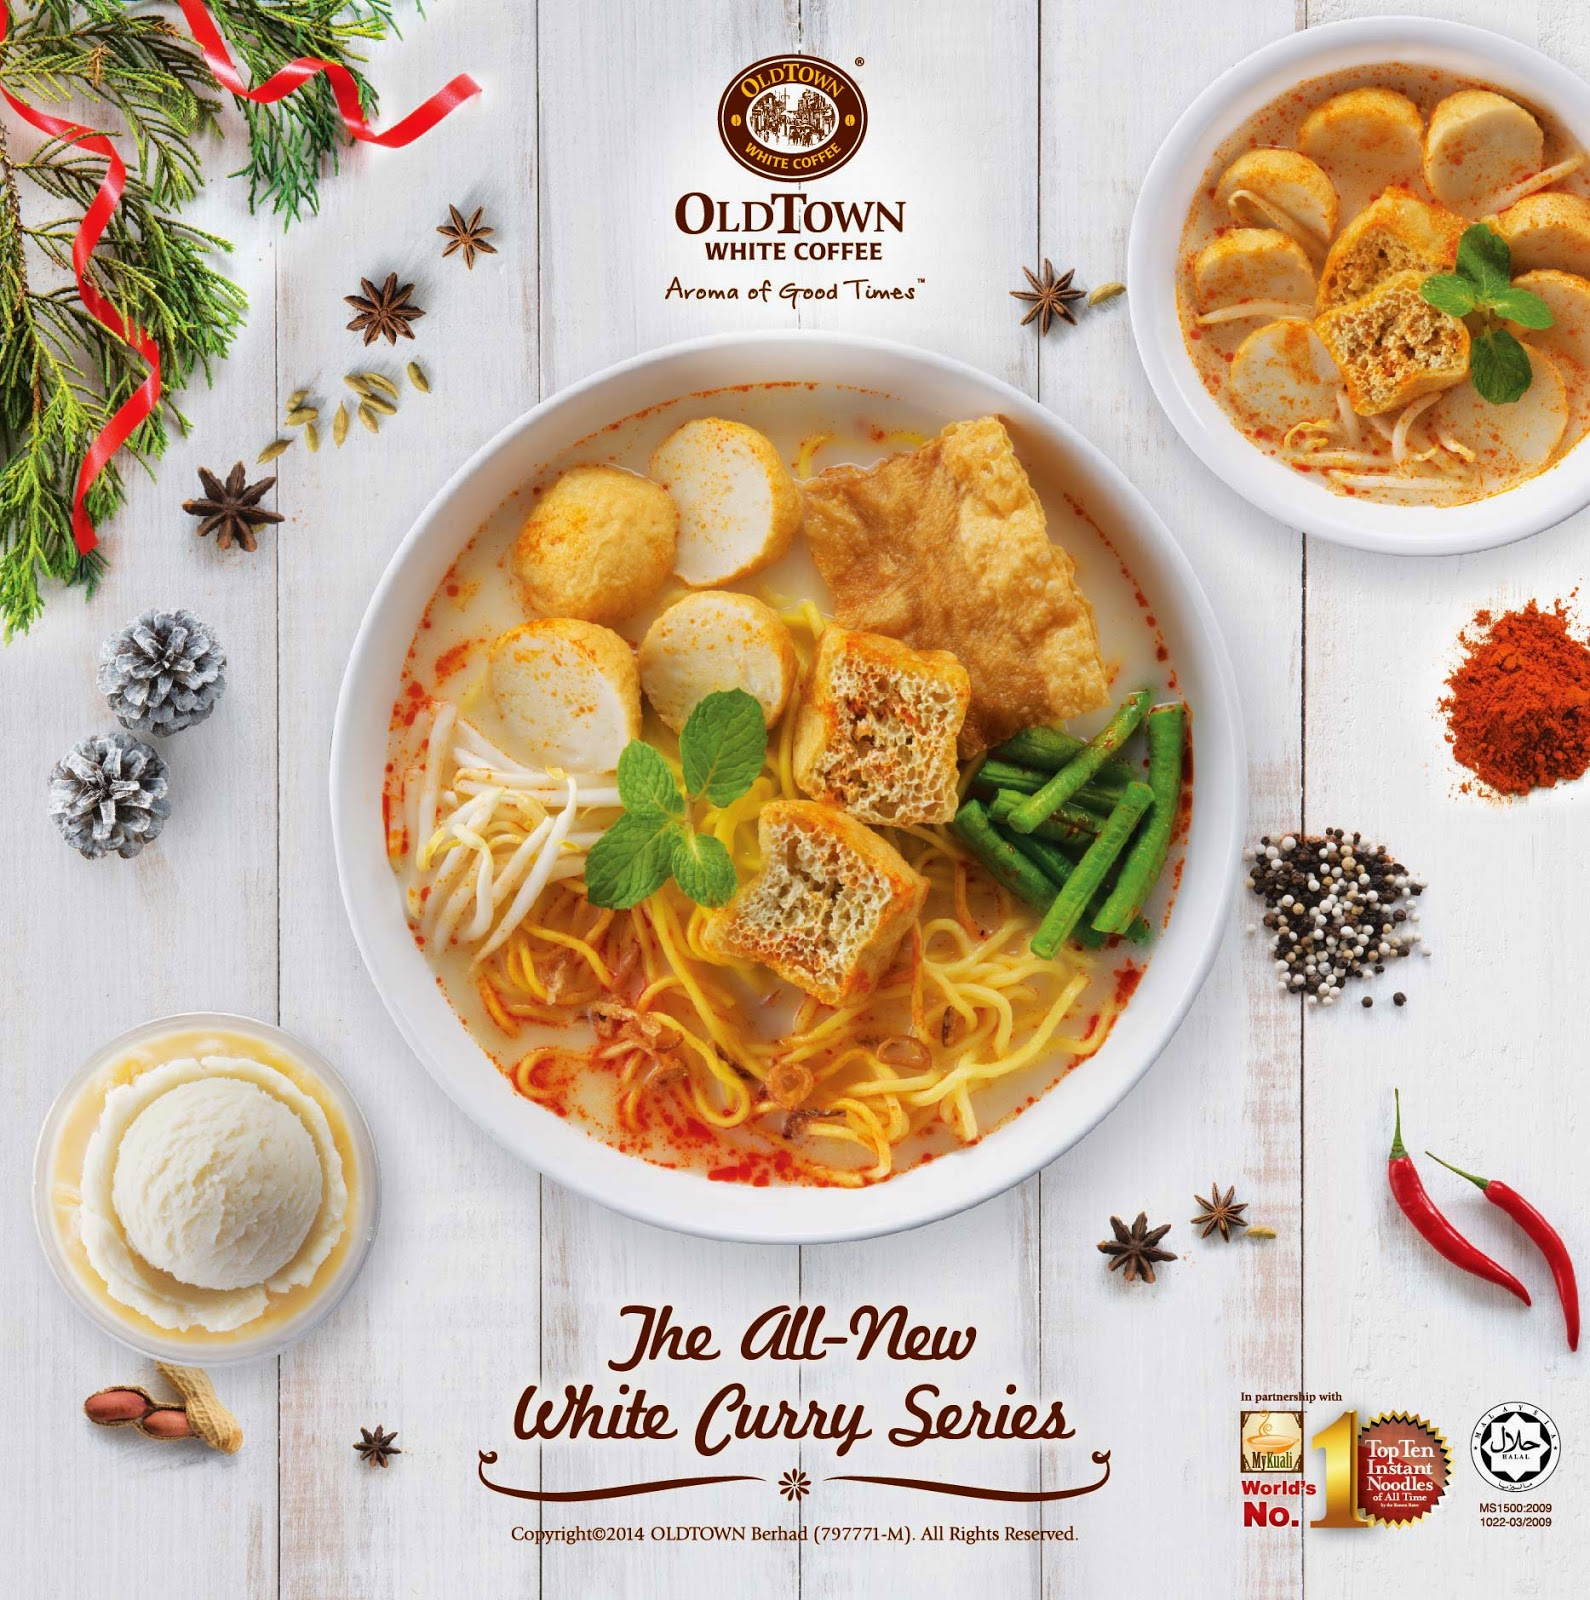 The All New White Curry Old Town White Coffee